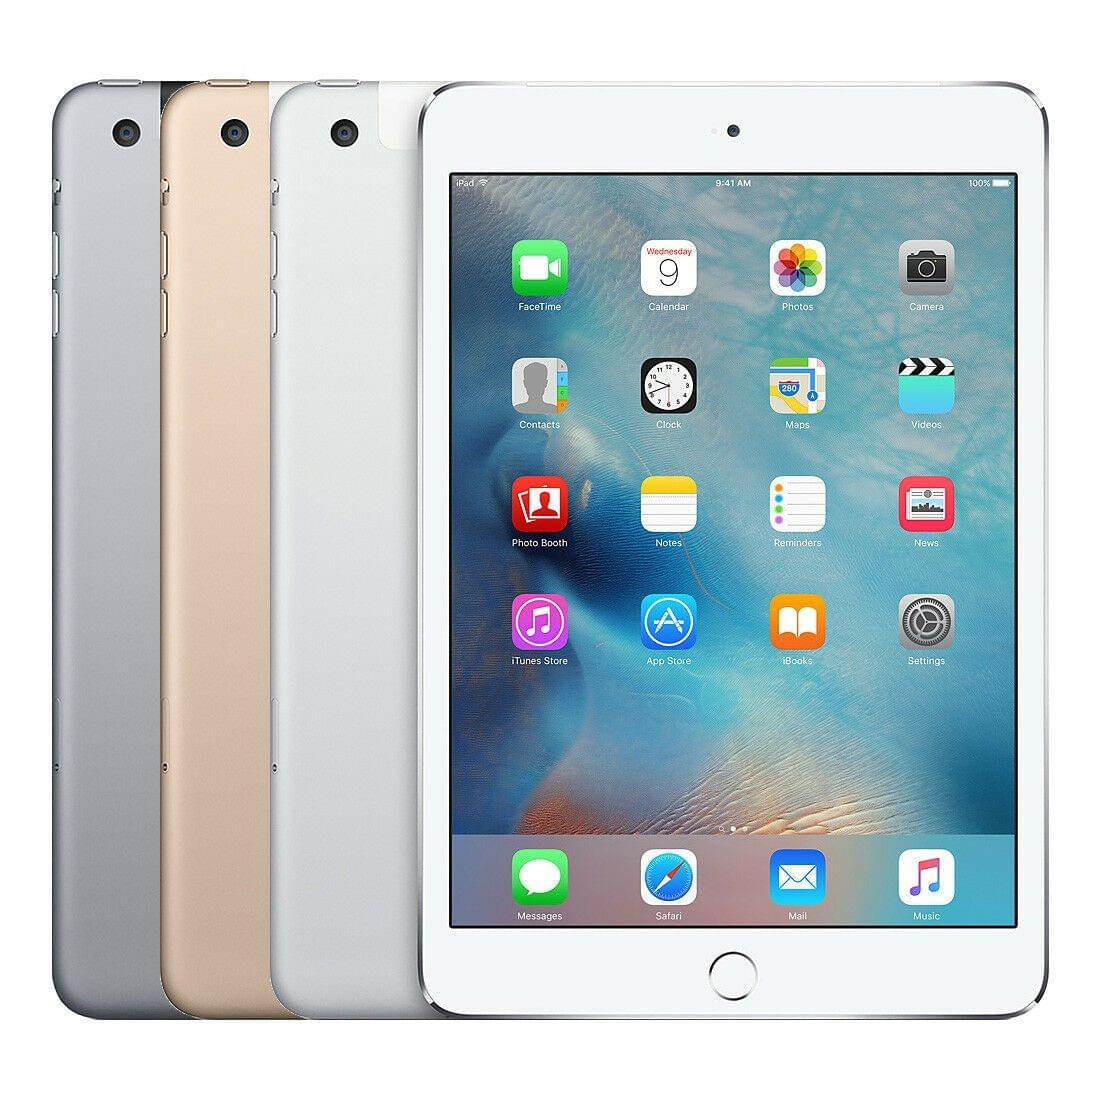 Apple iPad Mini 3rd Generation Tablet - Fix Or Cell Now Device Shop